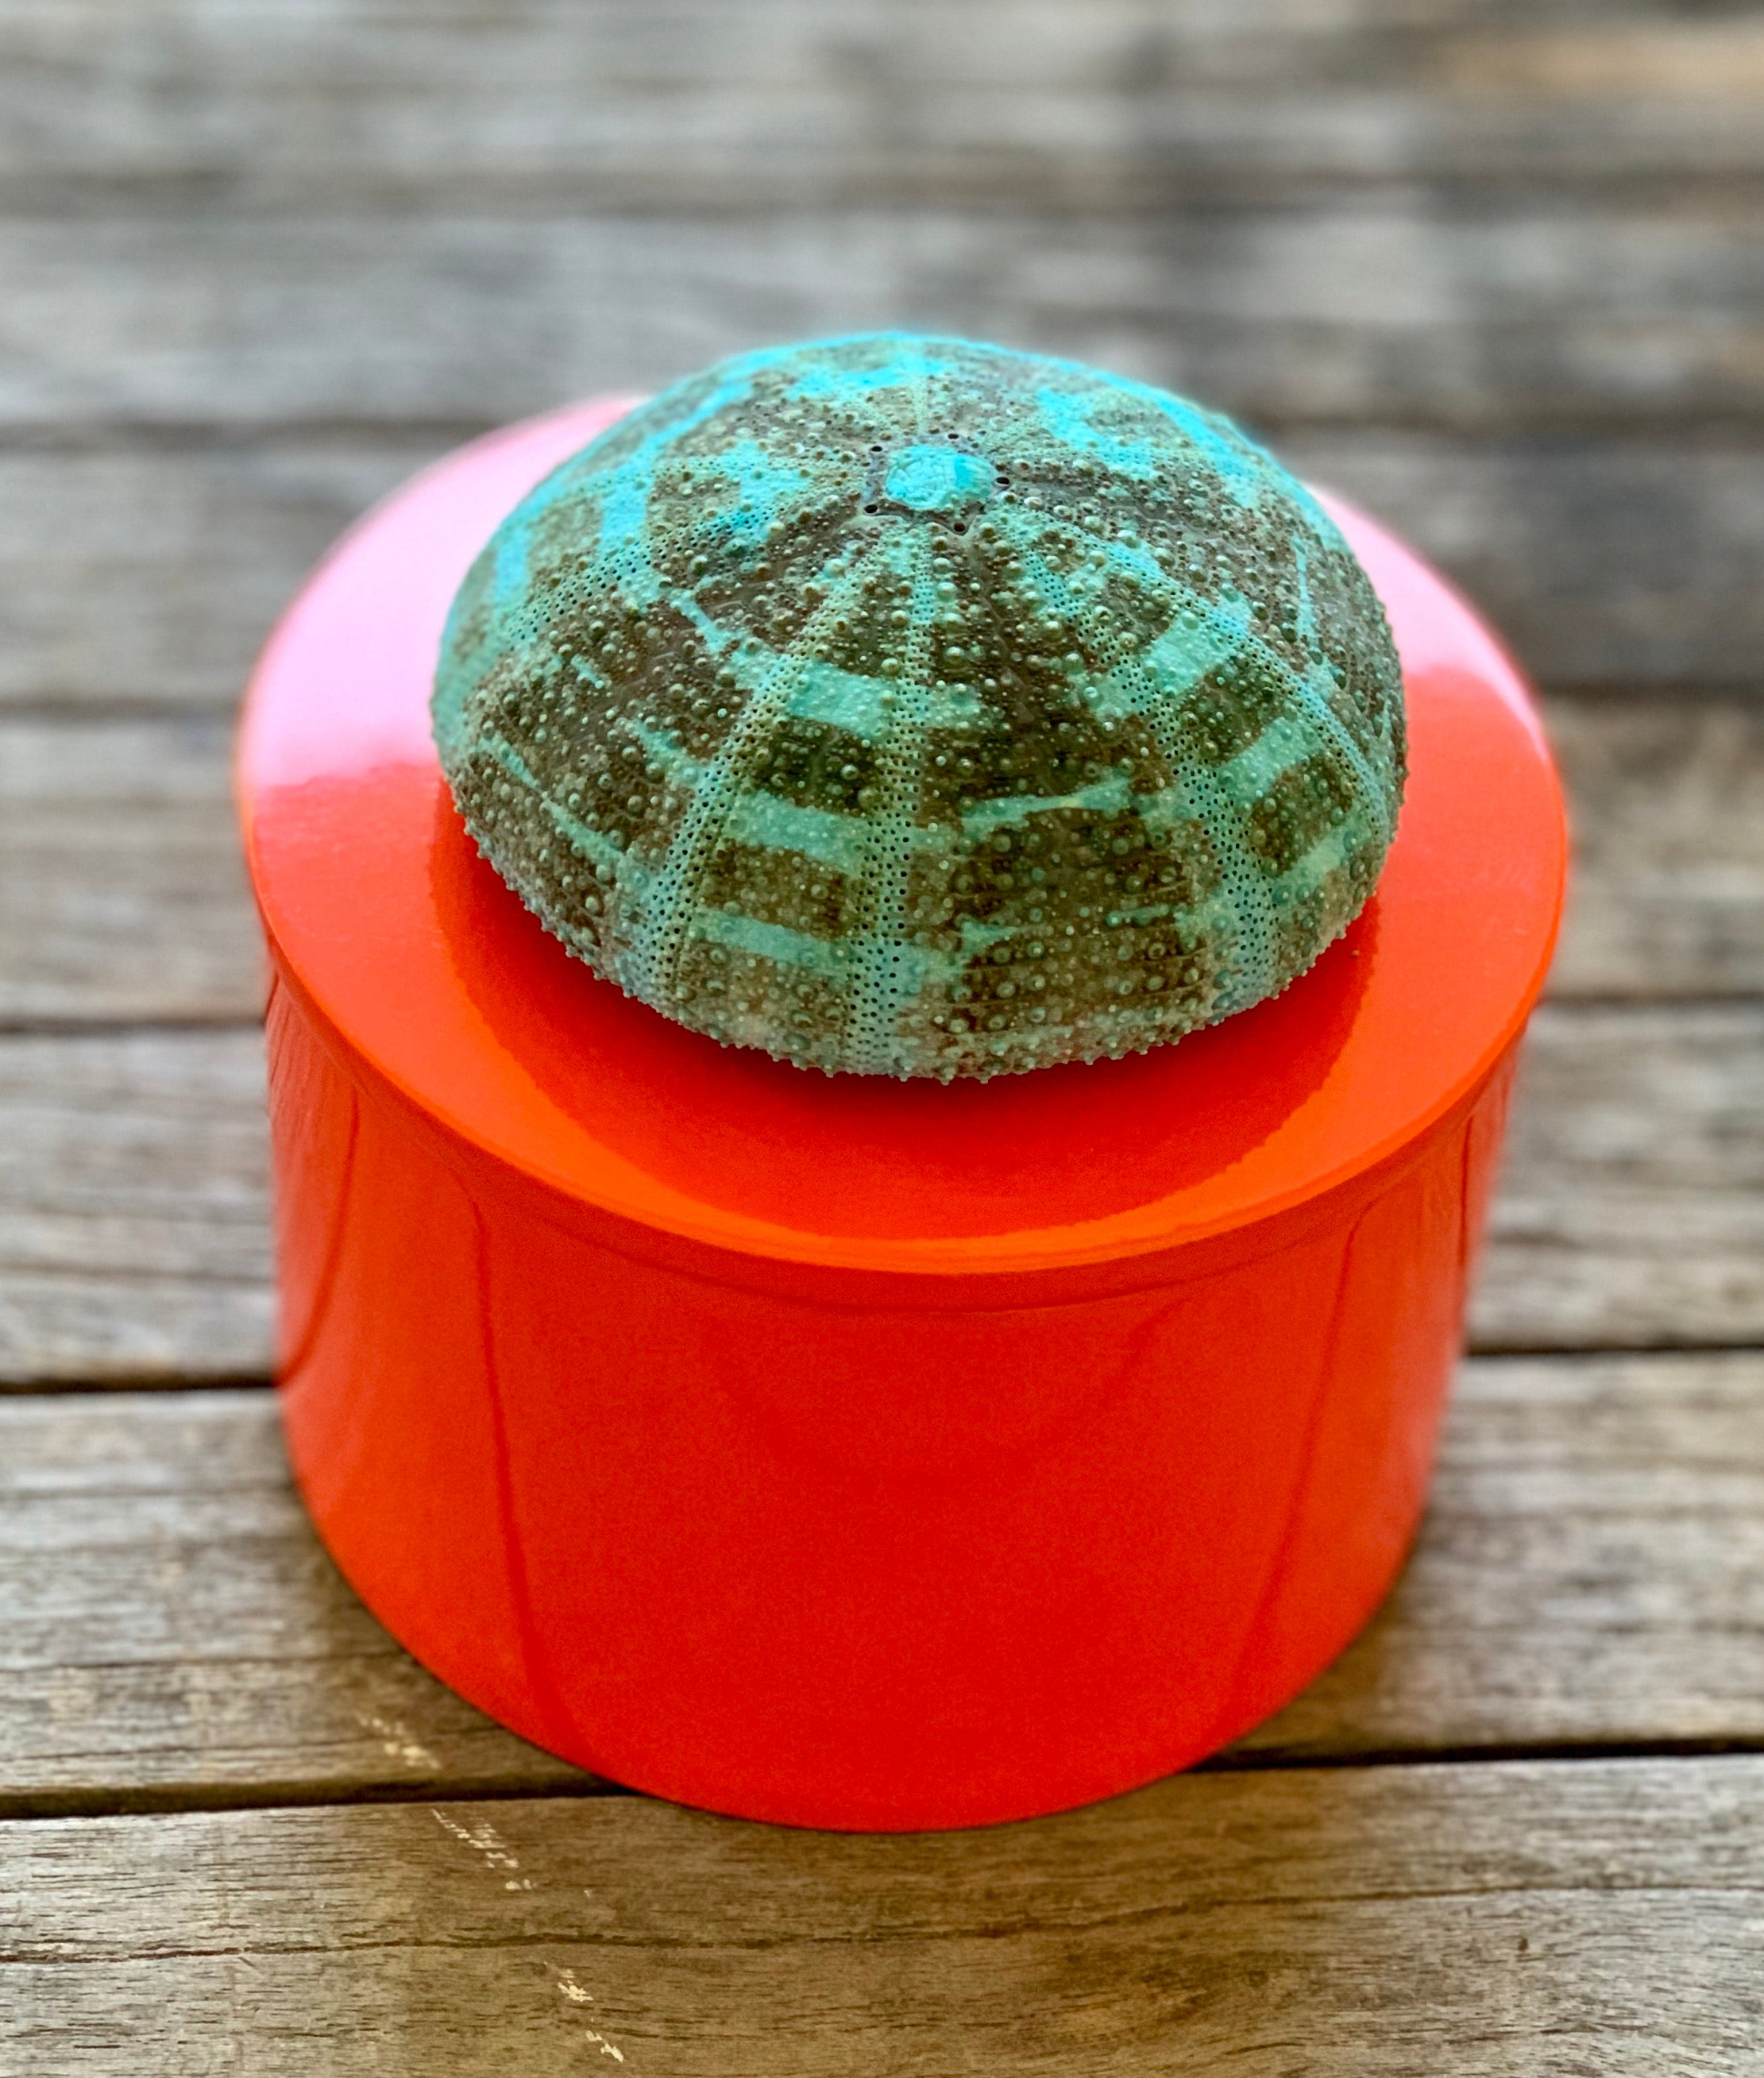 Round Orange Lacquer Box with Turquoise Urchin